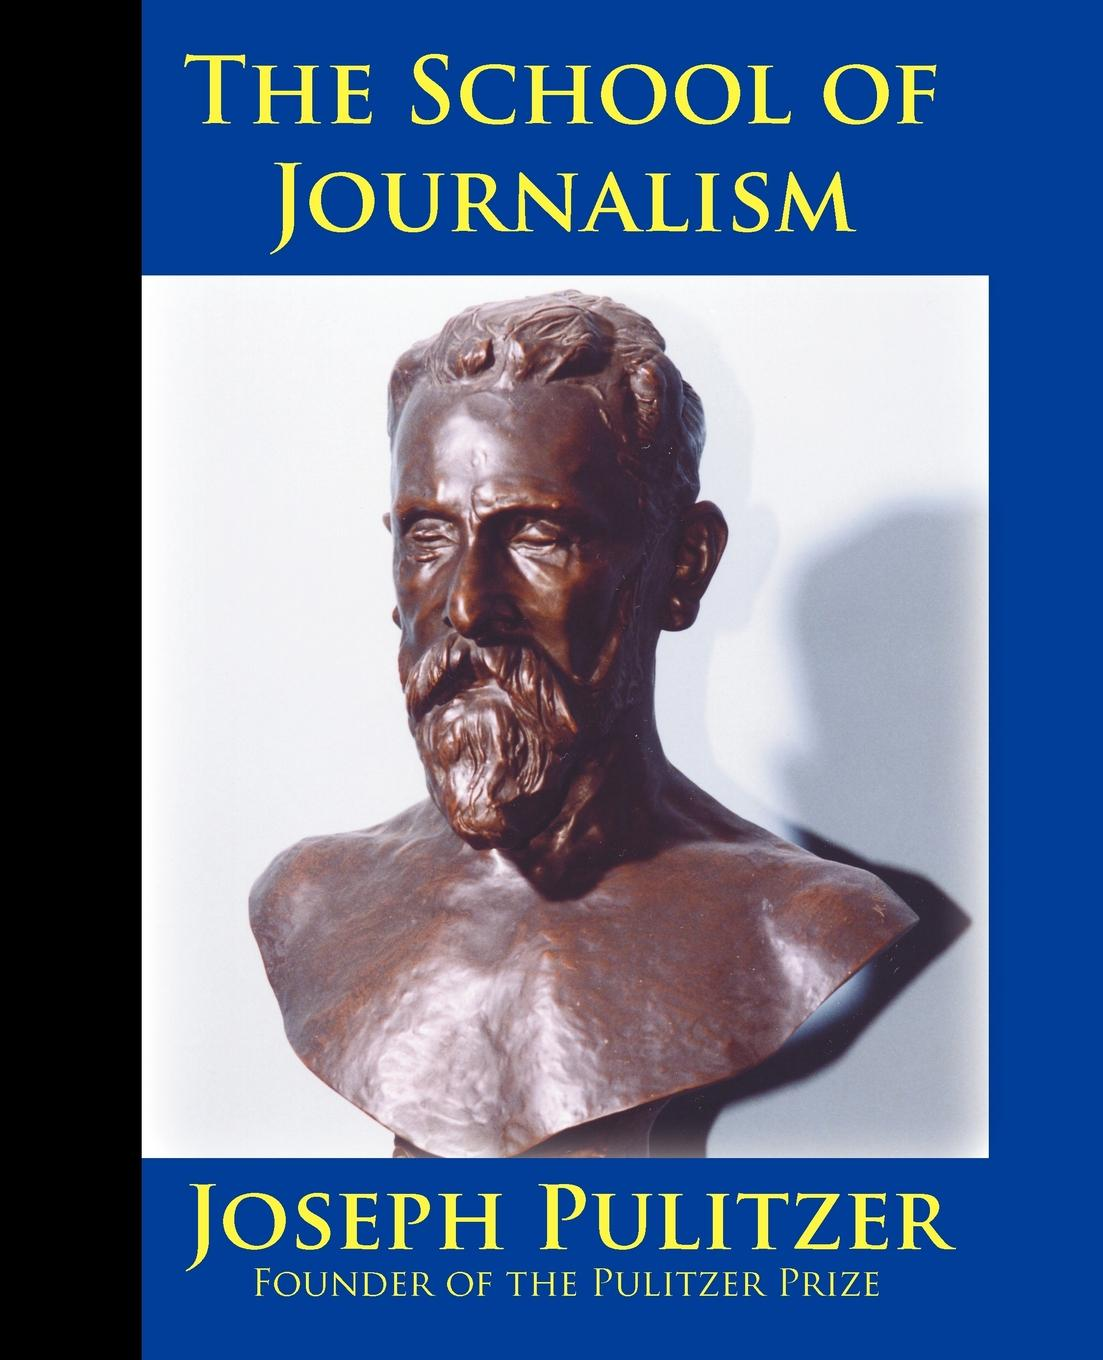 купить Joseph Pulitzer, Horace White The School of Journalism in Columbia University. The Book that Transformed Journalism from a Trade into a Profession по цене 1289 рублей